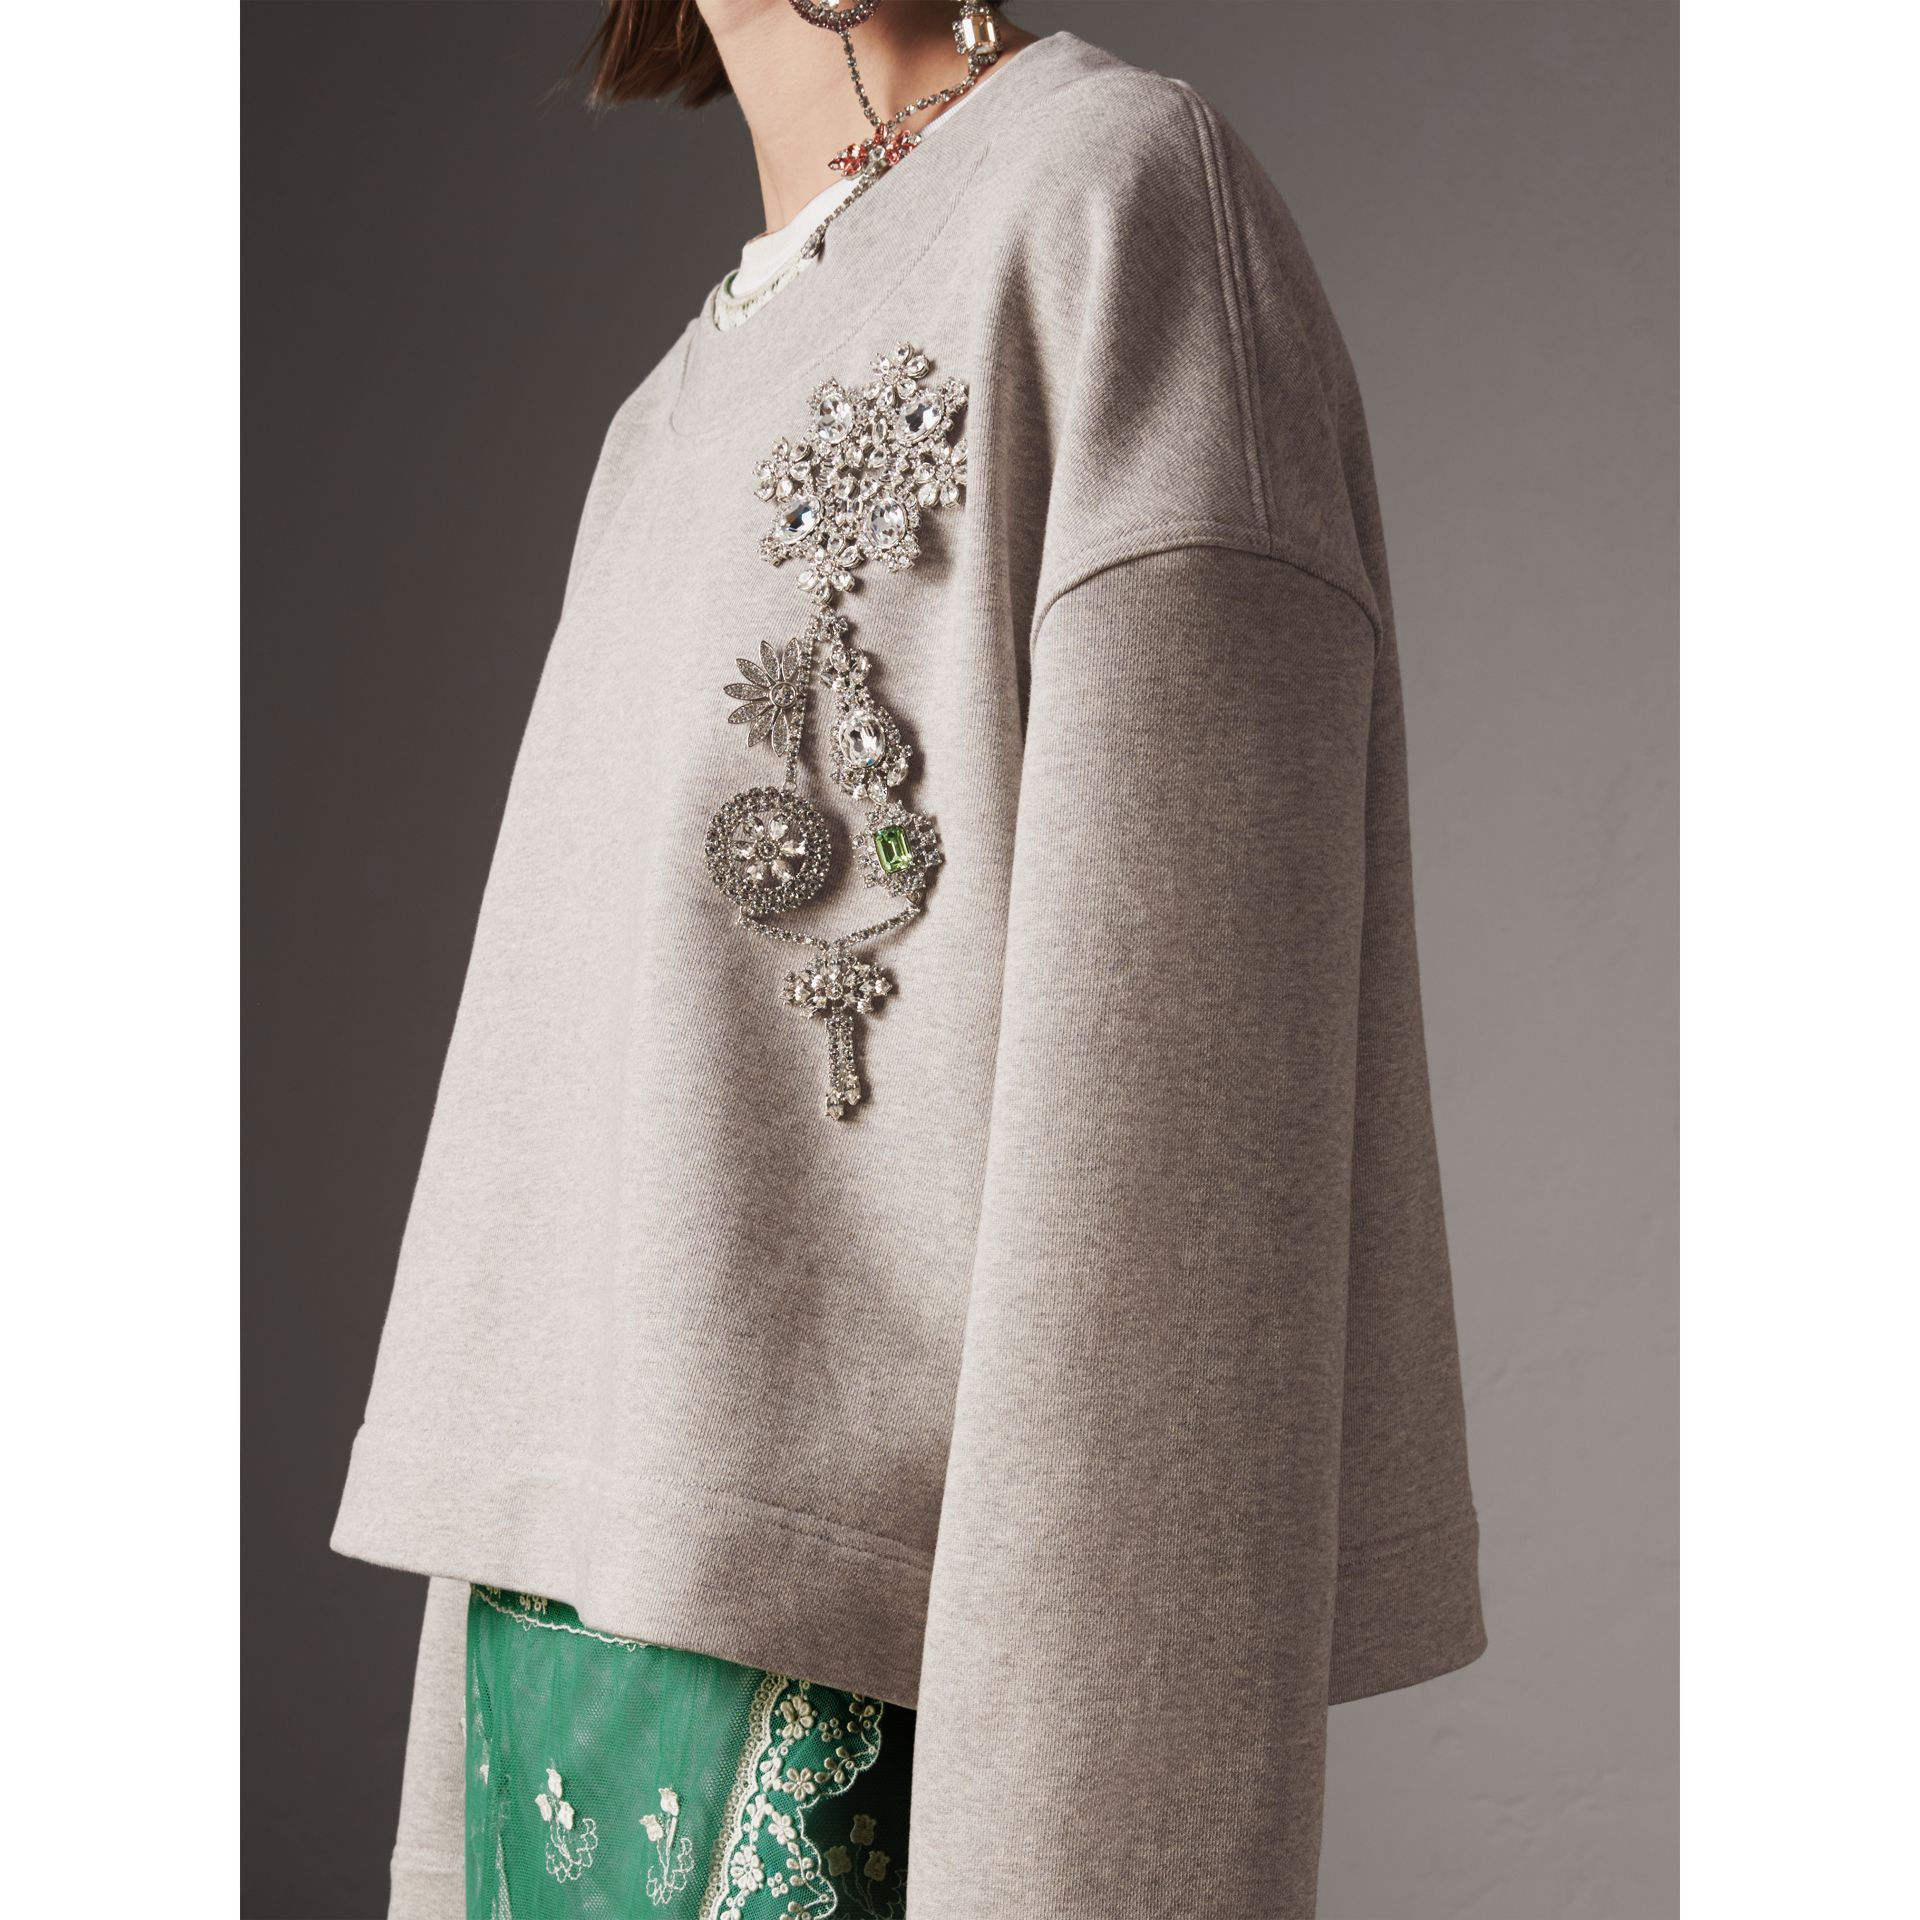 Cropped Sweatshirt with Crystal Brooch in Light Grey Melange - Women | Burberry - gallery image 1